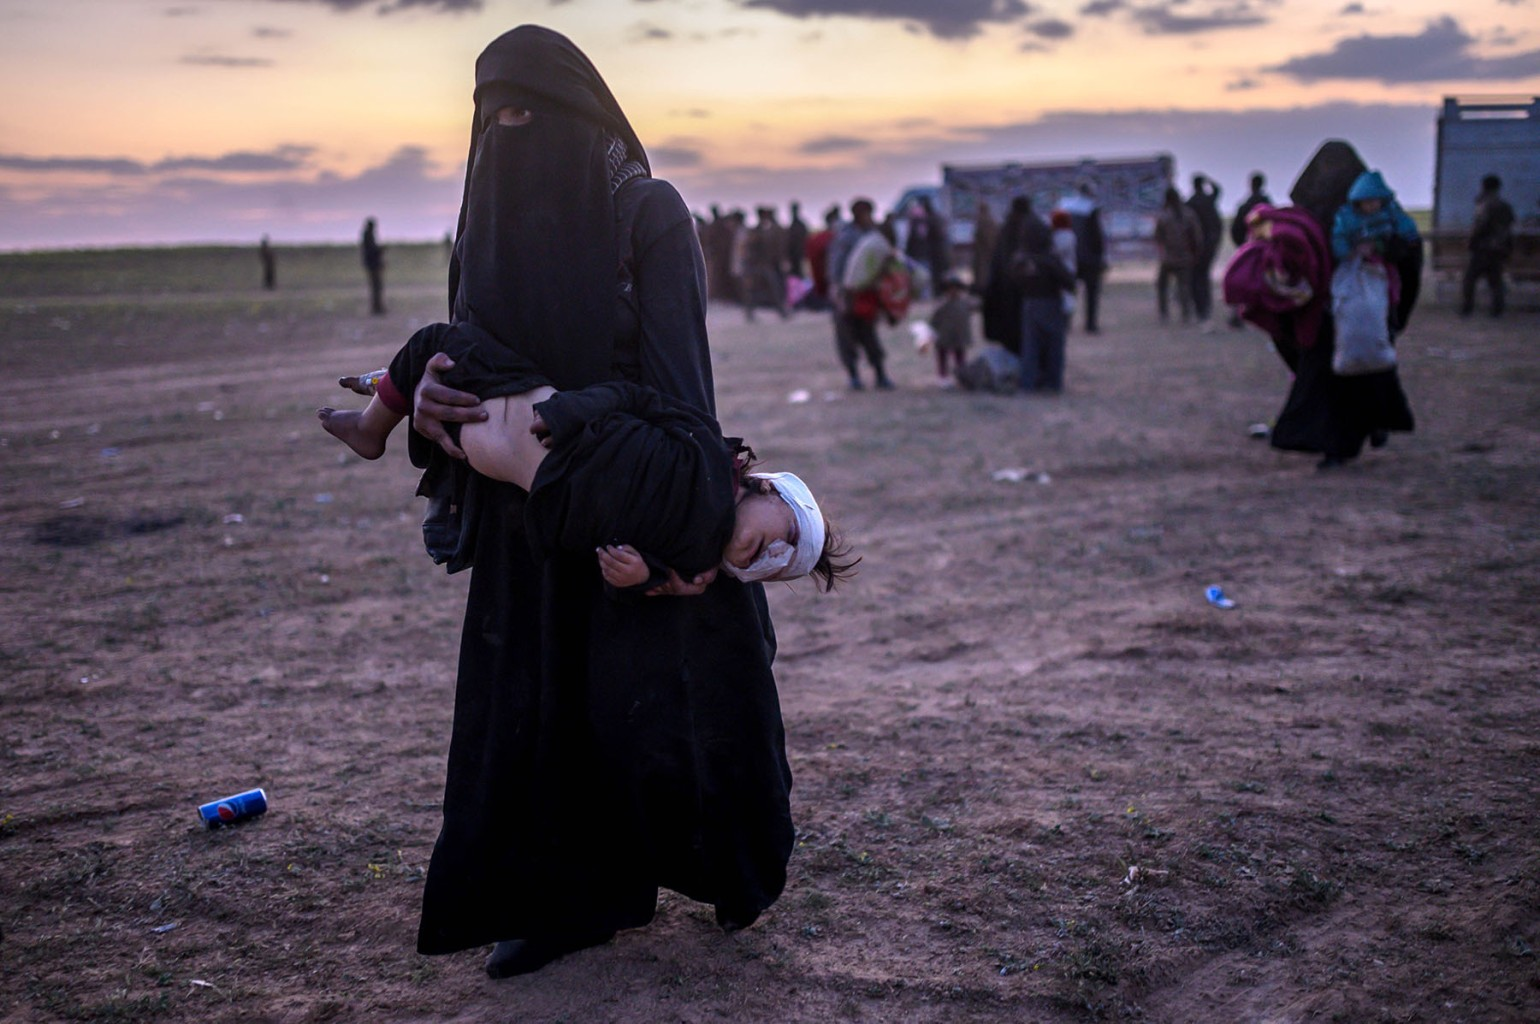 A woman carries her injured child as she leaves Baghouz, Syria, on March 4. BULENT KILIC/AFP/Getty Images